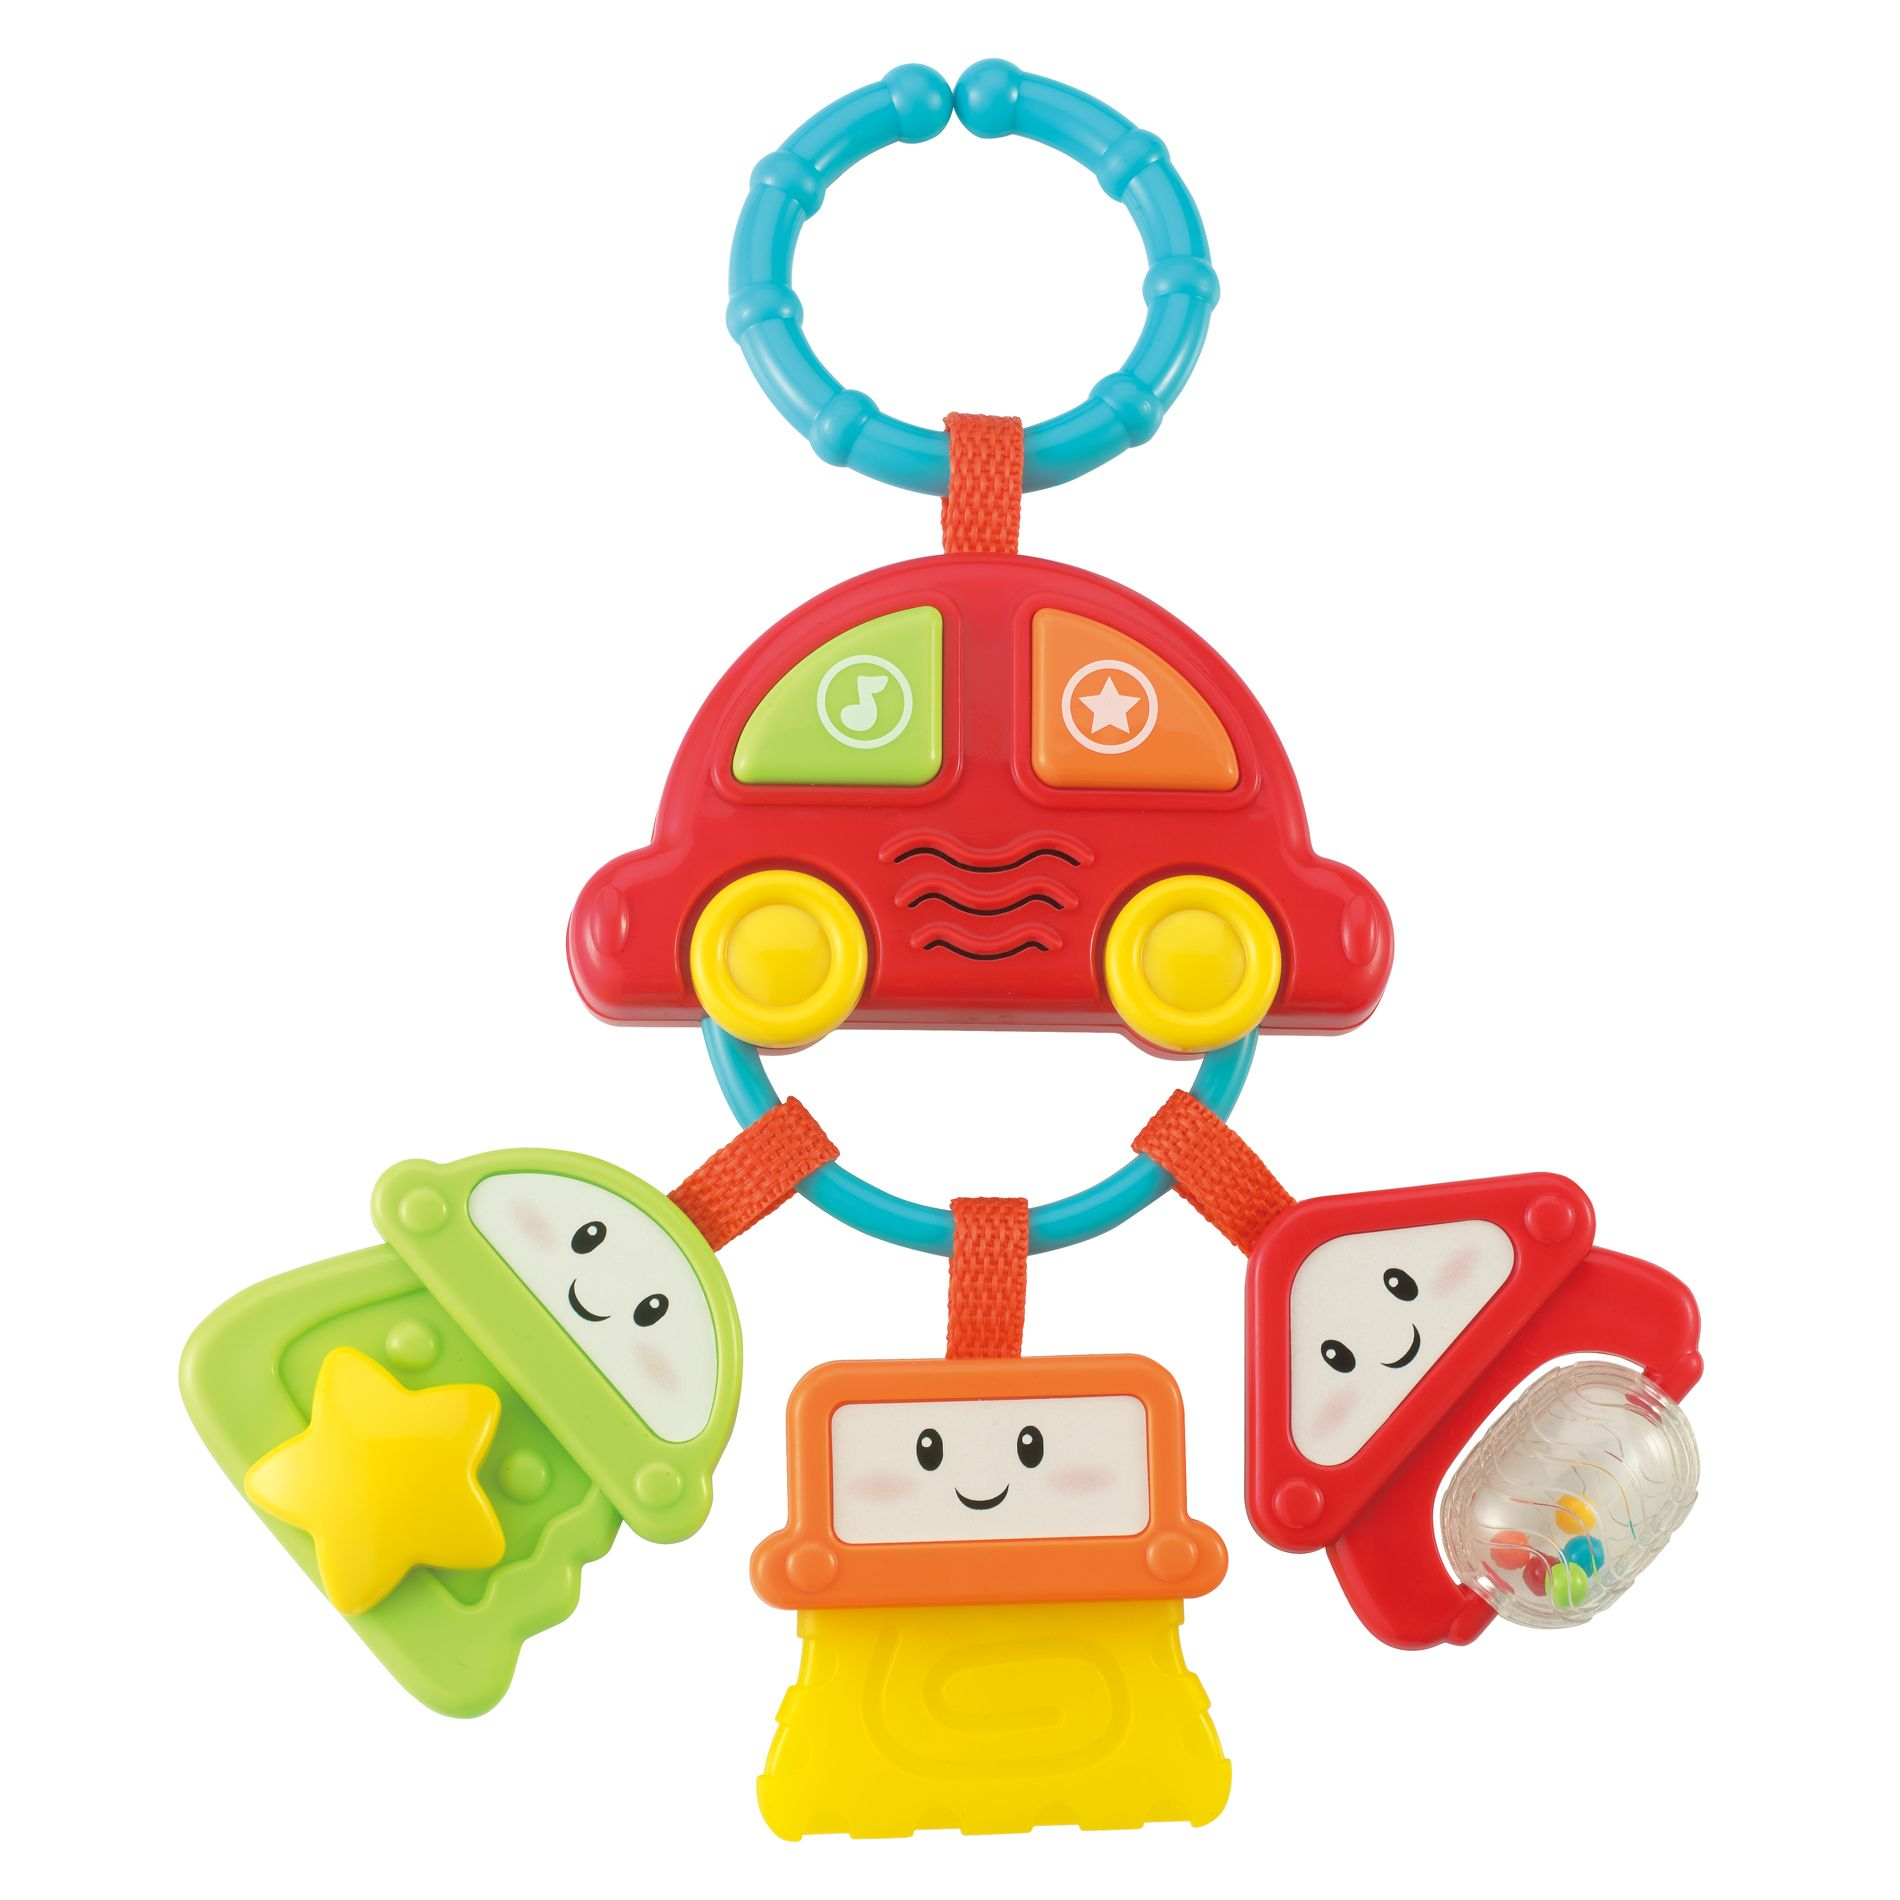 Just Kidz Sounds 'n Rattle Keys